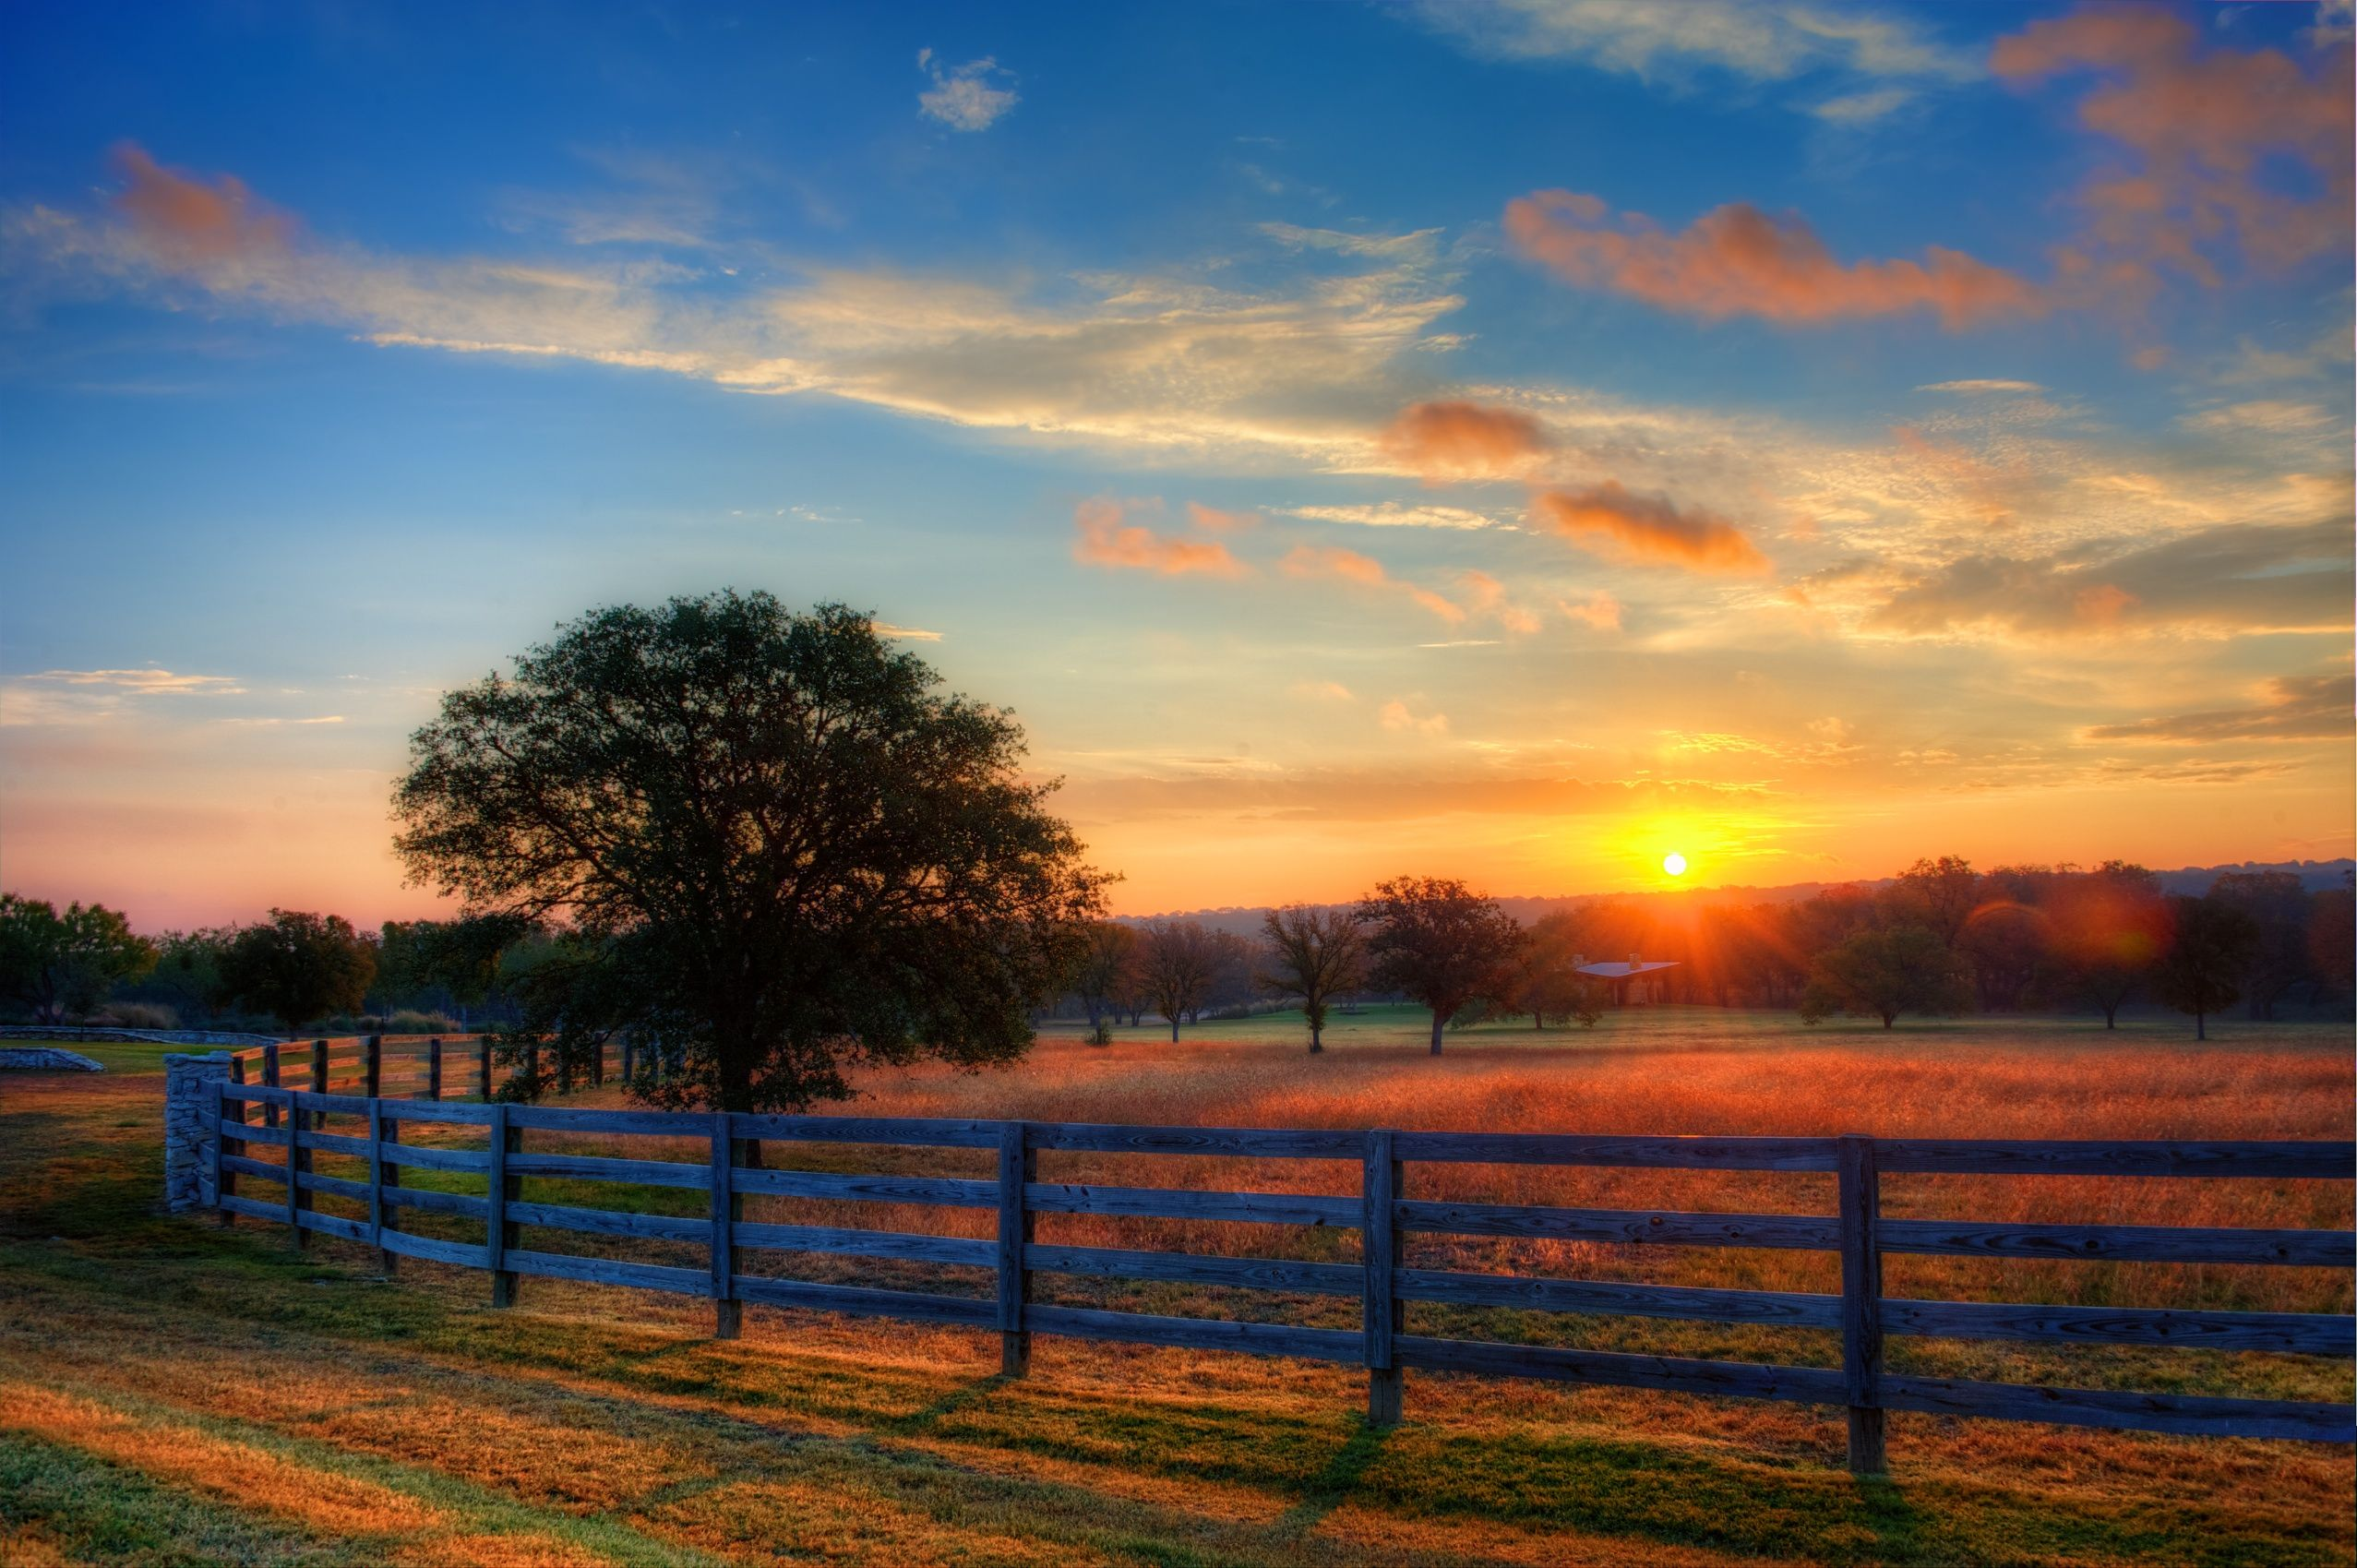 Sunrise in the texas hill country texas hill country texas and sunrise in the texas hill country sciox Images